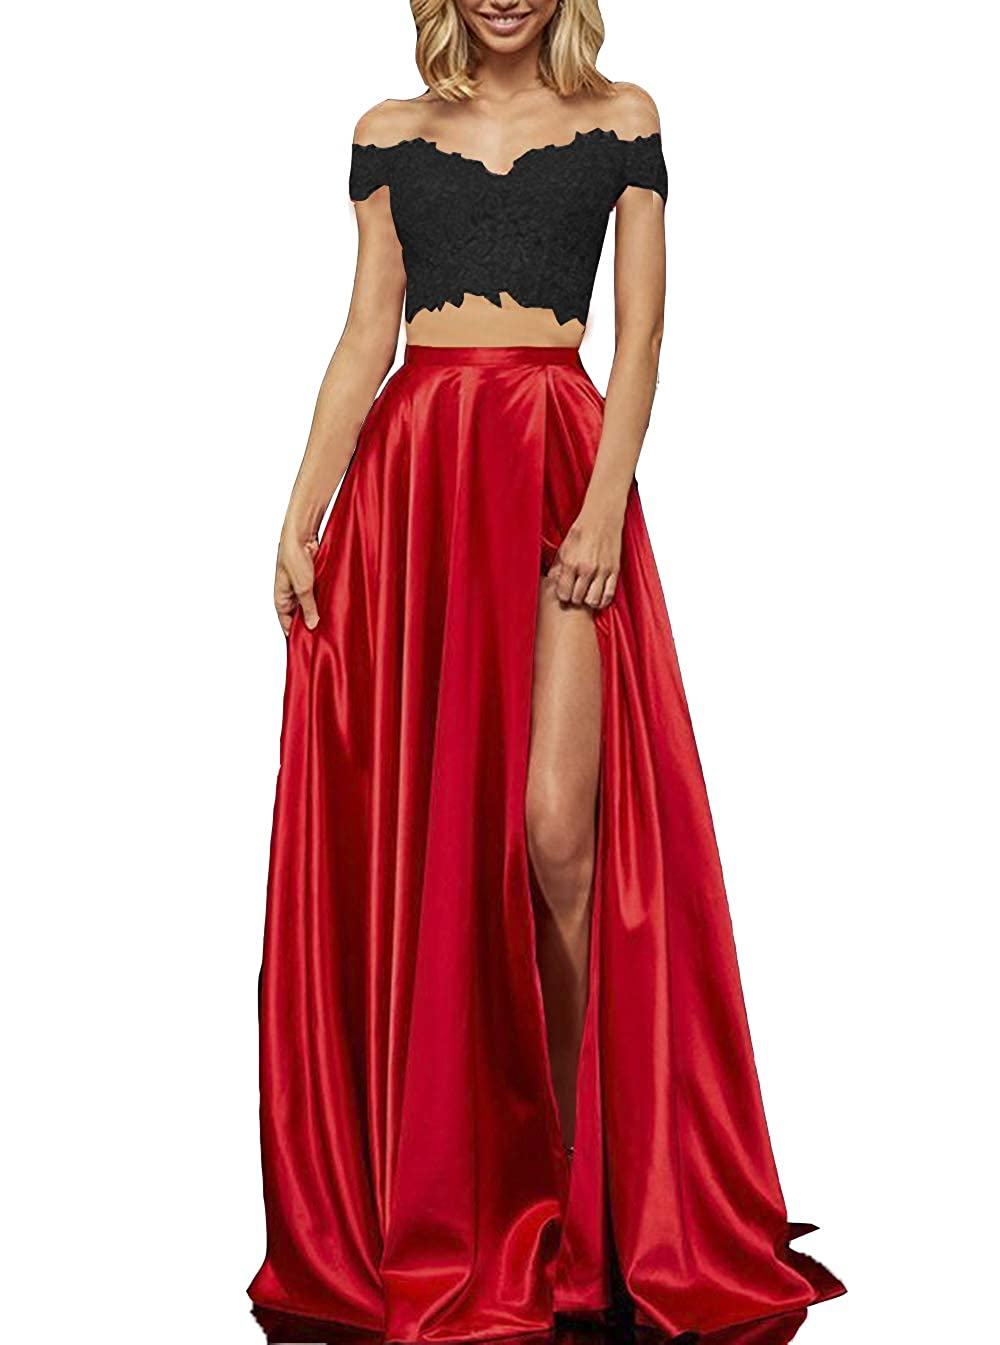 cbb53470722 Red Homecoming Dresses Two Piece - Gomes Weine AG